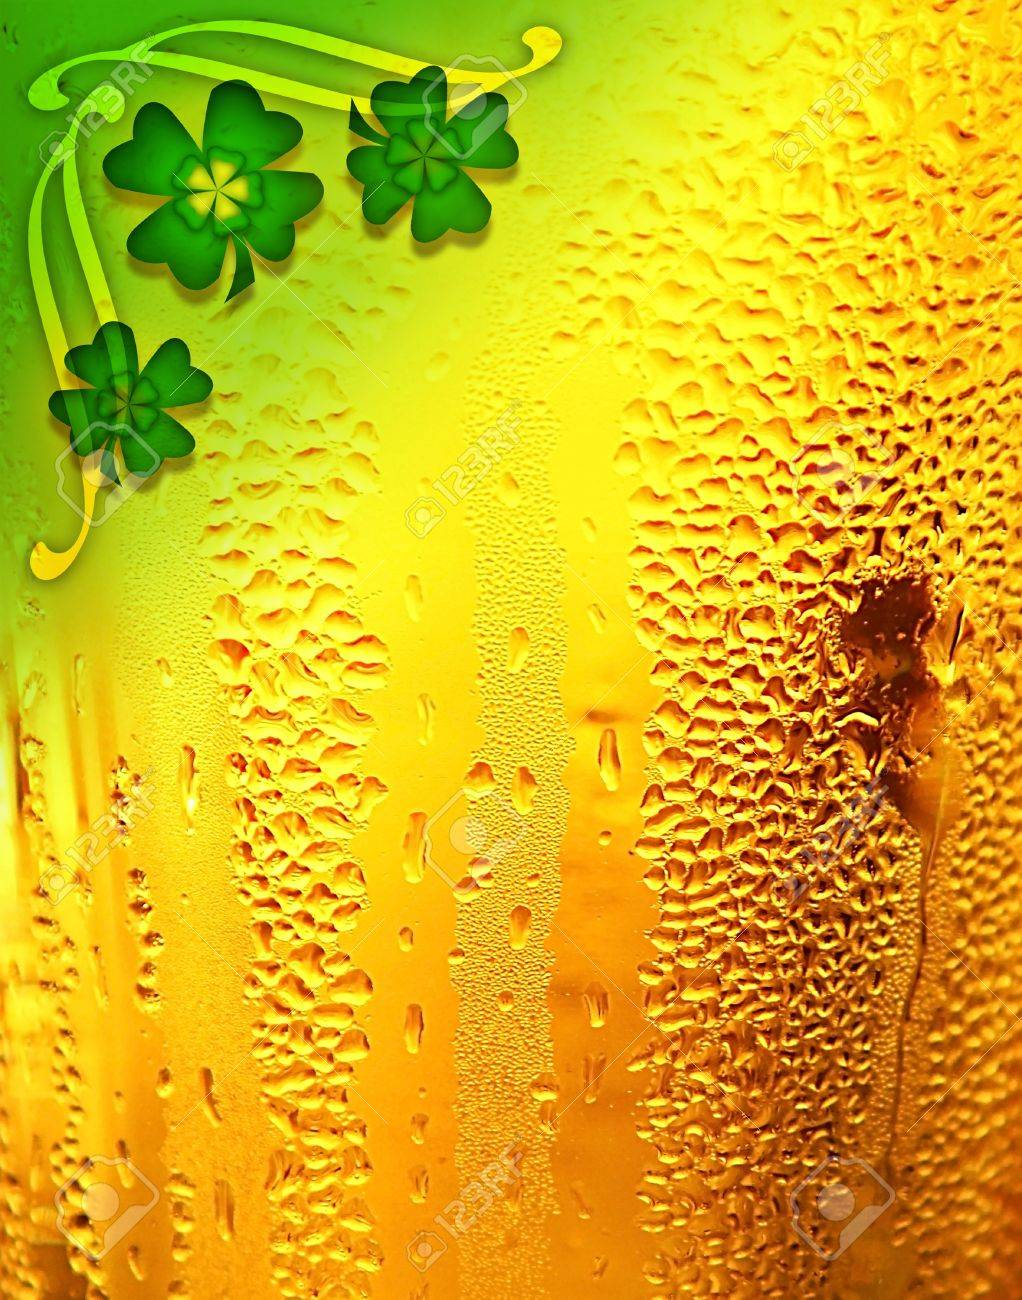 Beer background with clover border, St.Patrick's day holiday celebration, lucky concept Stock Photo - 8968119